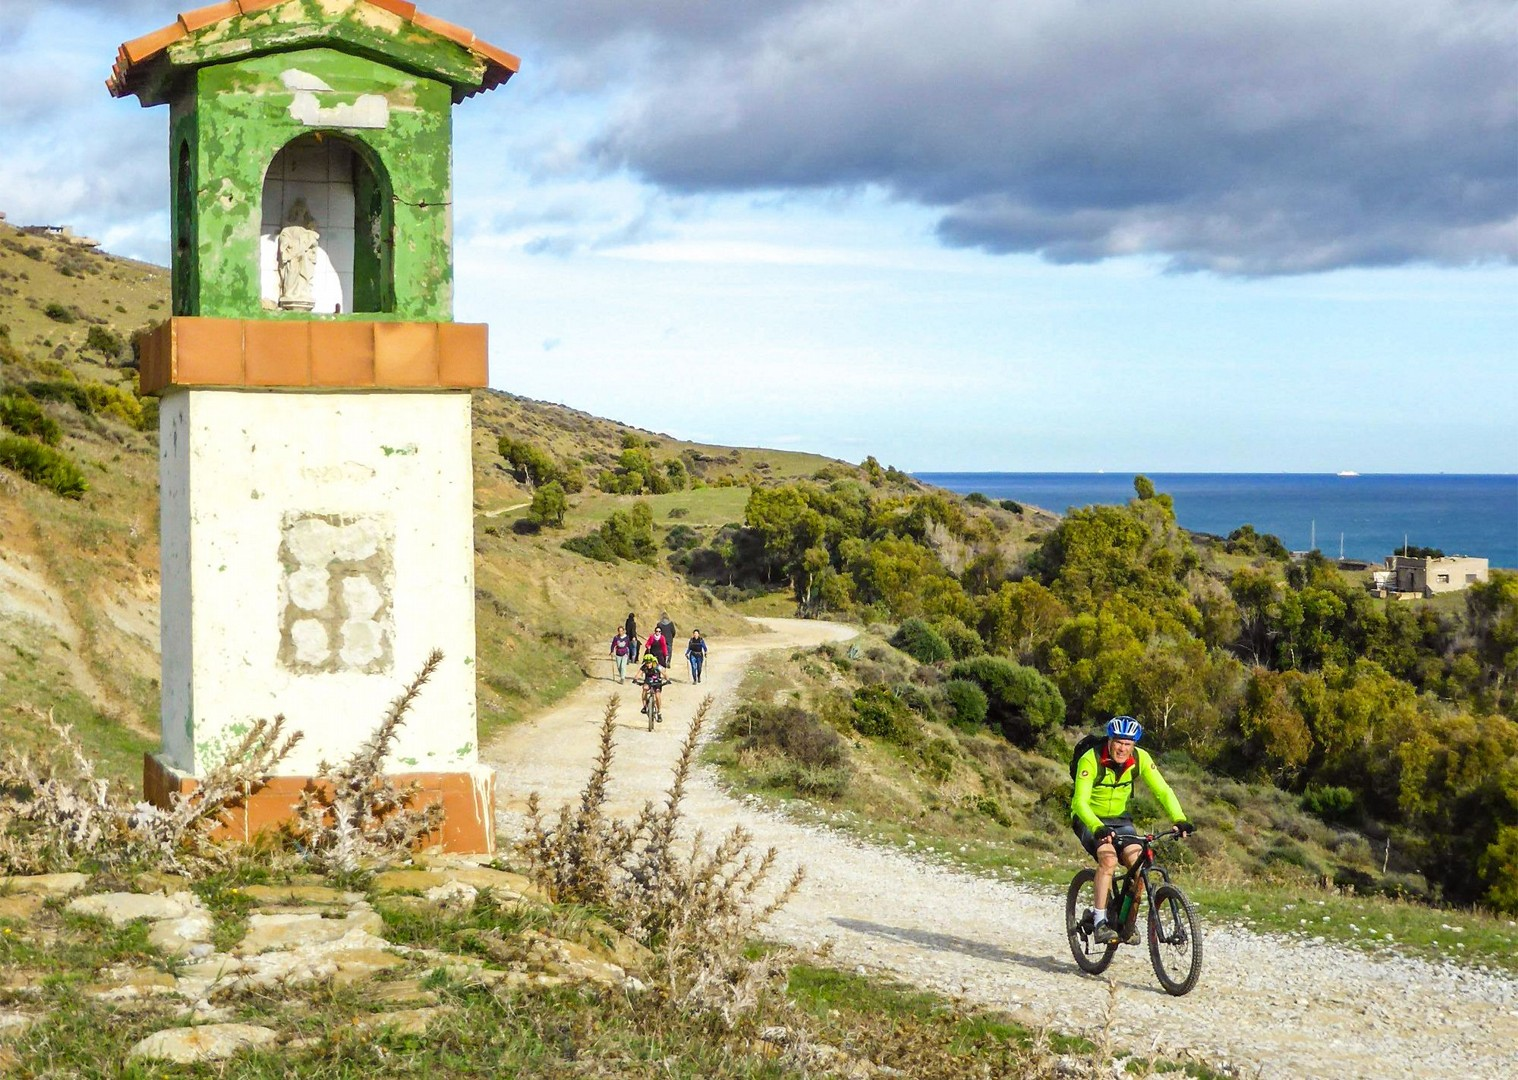 mountain-biking-in-spain-with-saddle-skedaddle-guided-tour-by-bike.jpg - Spain - Trans Andaluz - Guided Mountain Bike Holiday - Mountain Biking